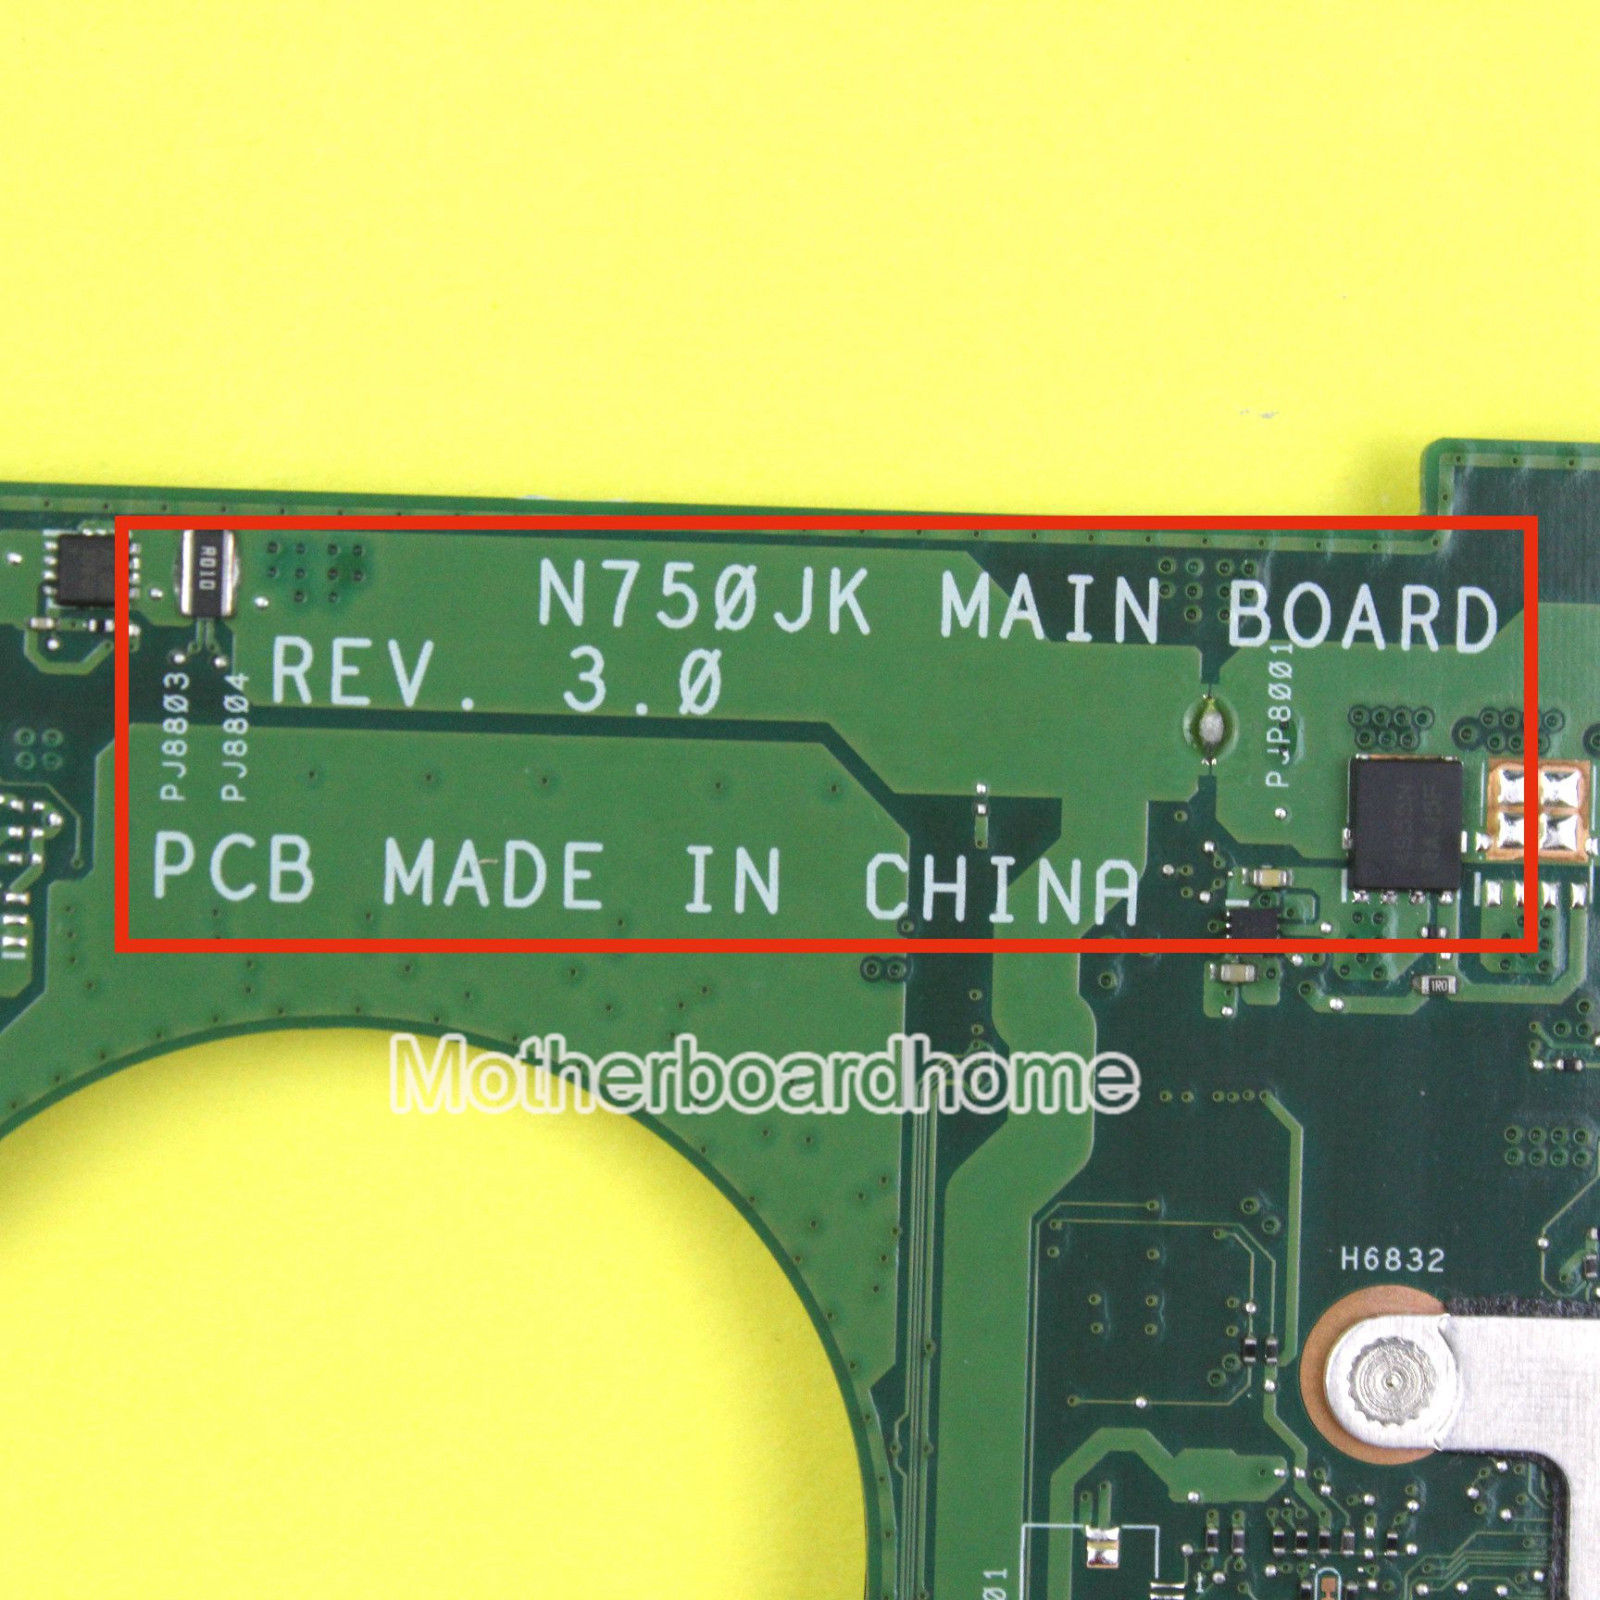 ASUS N750JV Motherboard N750JK Rev.3.0 GT740M With i7-4700HQ CPU Tested